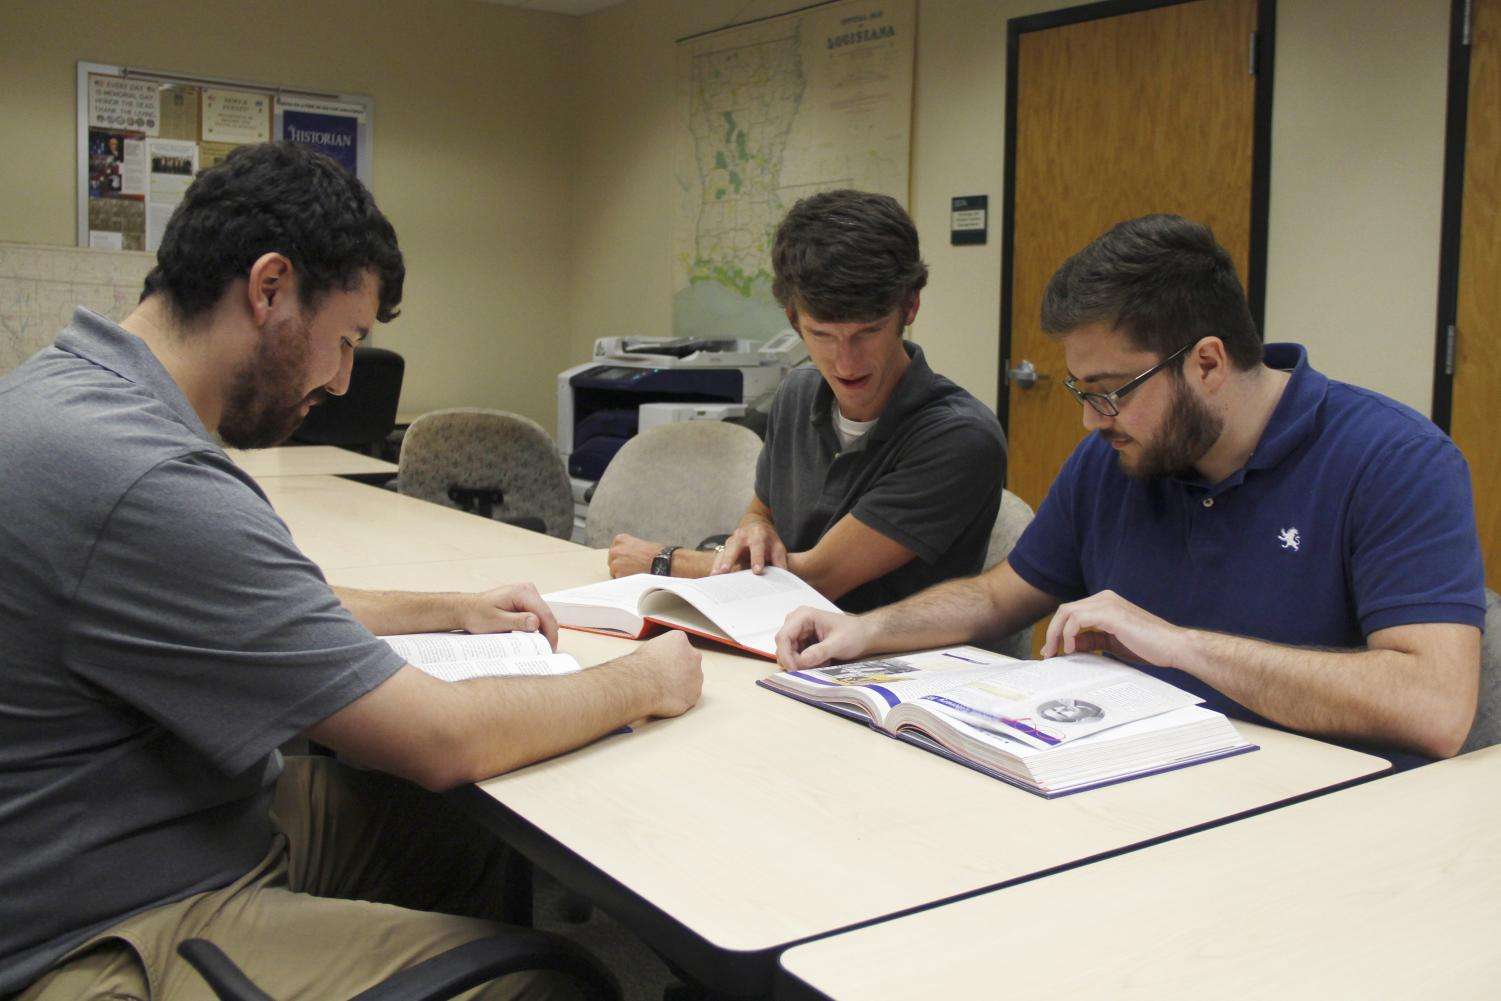 Chad Duffaut, Brody Simmons and Everett Paretti, all graduate students in history, check out some textbooks. Students may be fascinated by the classes or find their second home in the Department of History and Political Science .